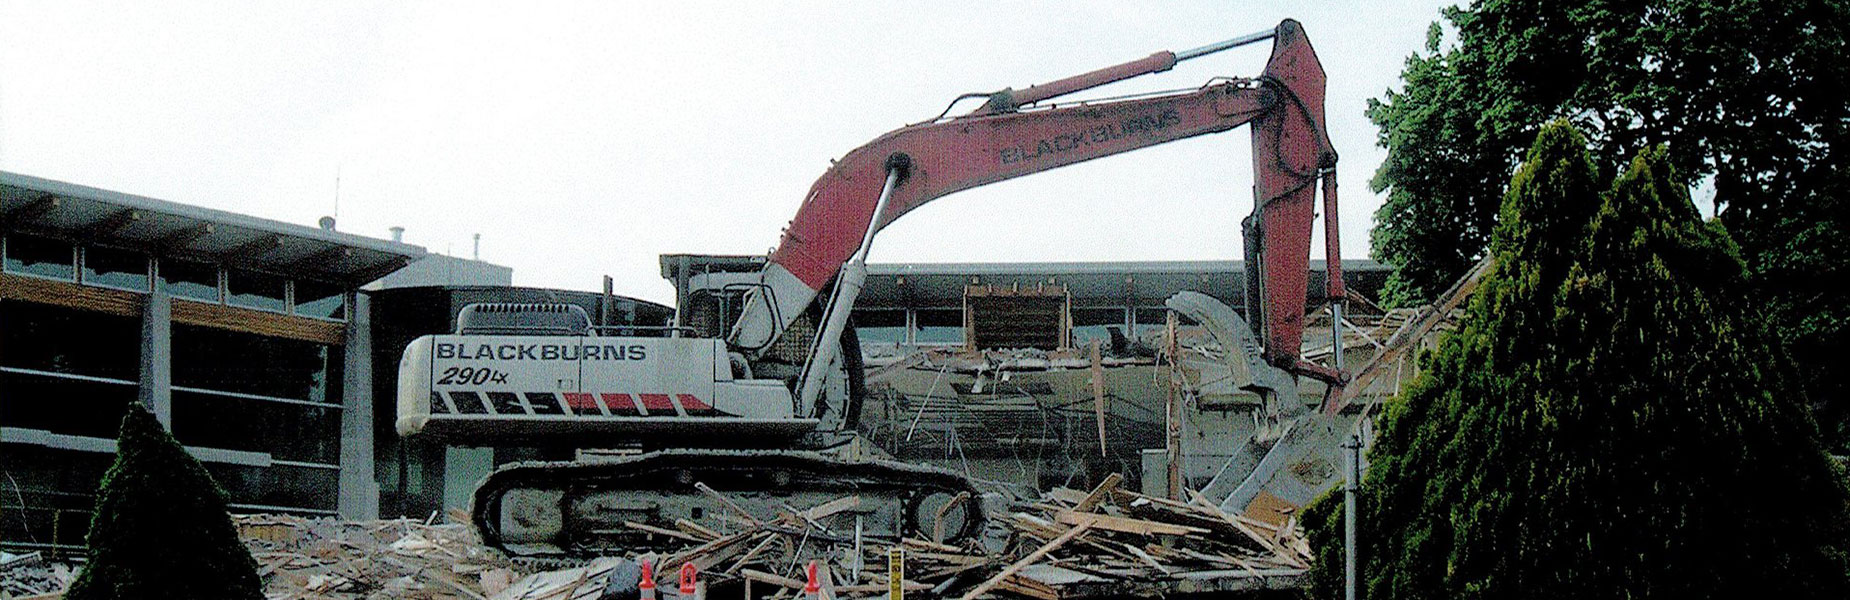 Blackburn Excavating Ltd offers high demolition services, as well as complementary surveying services through our sister company, Blackburn Surveying Ltd.